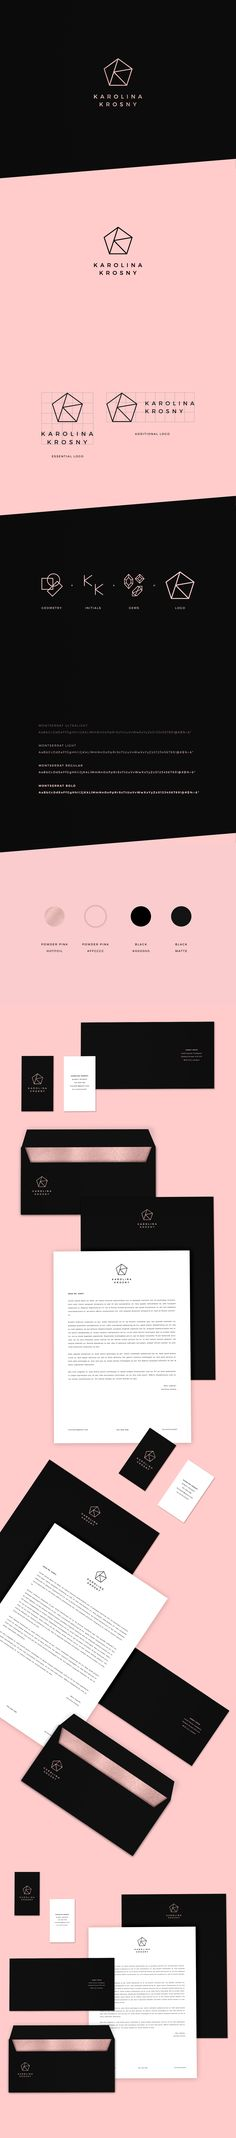 Pesonal identity branding matte black matt gold rose hotfoil geometry design logo sign karolina krosny graphic designer